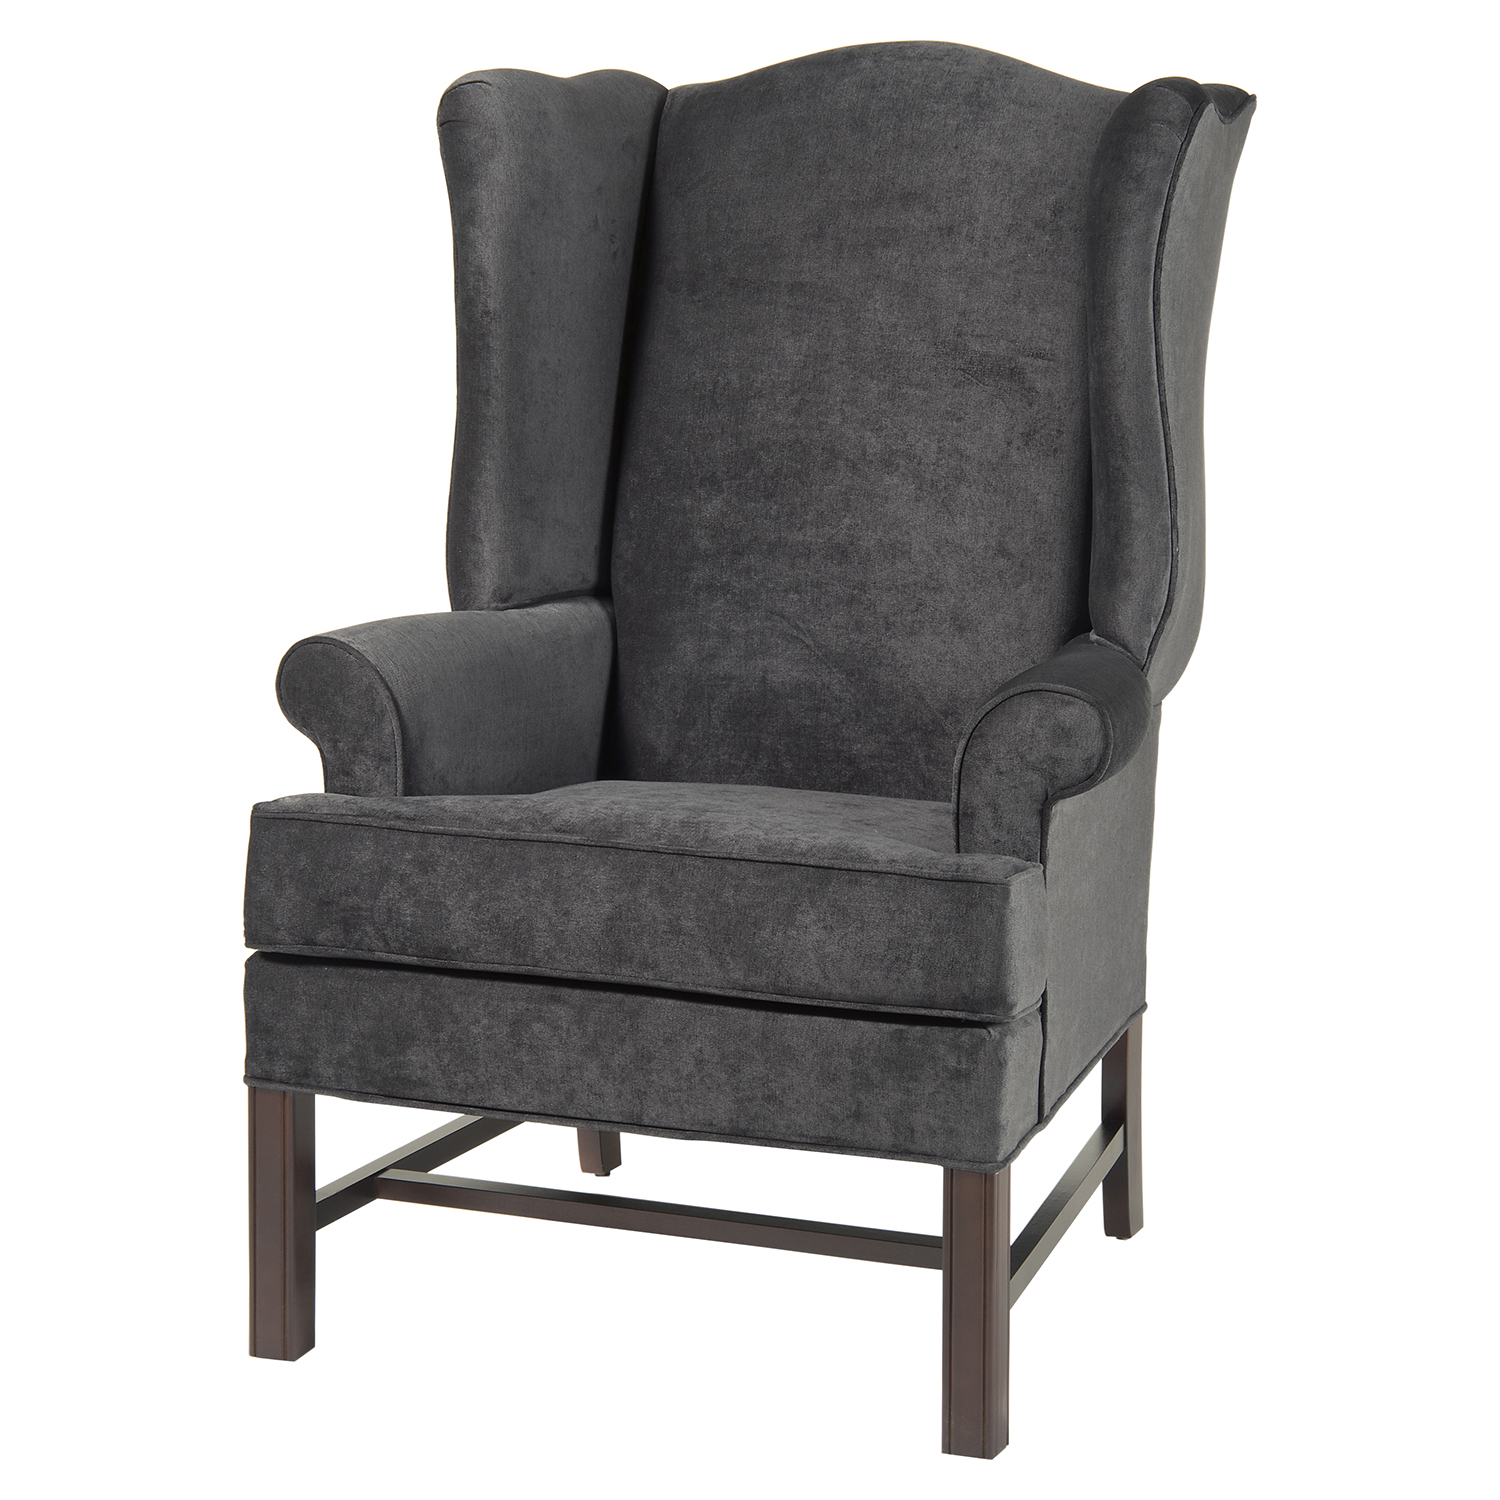 Chippendale Wing Chair - Charcoal